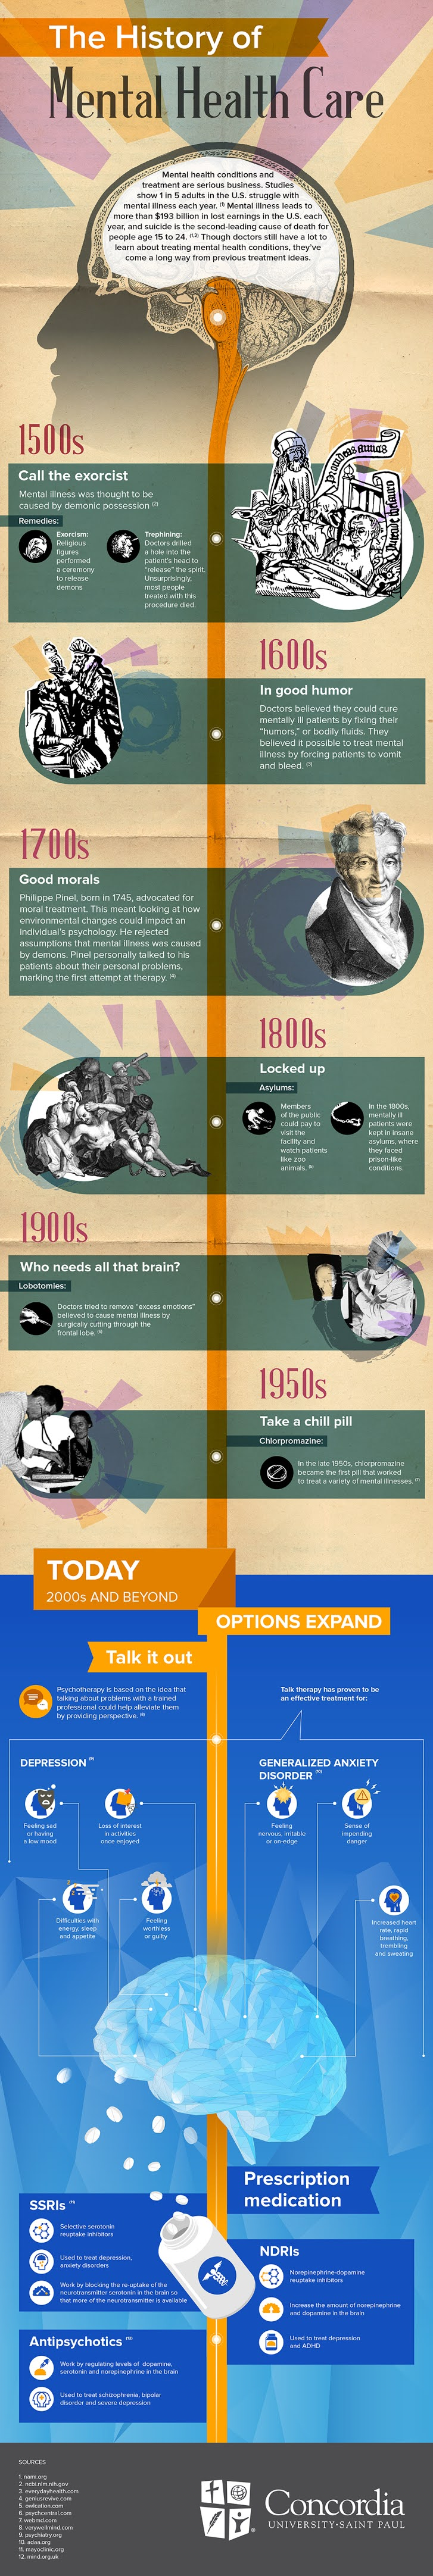 The History of Mental Health Care #infographic